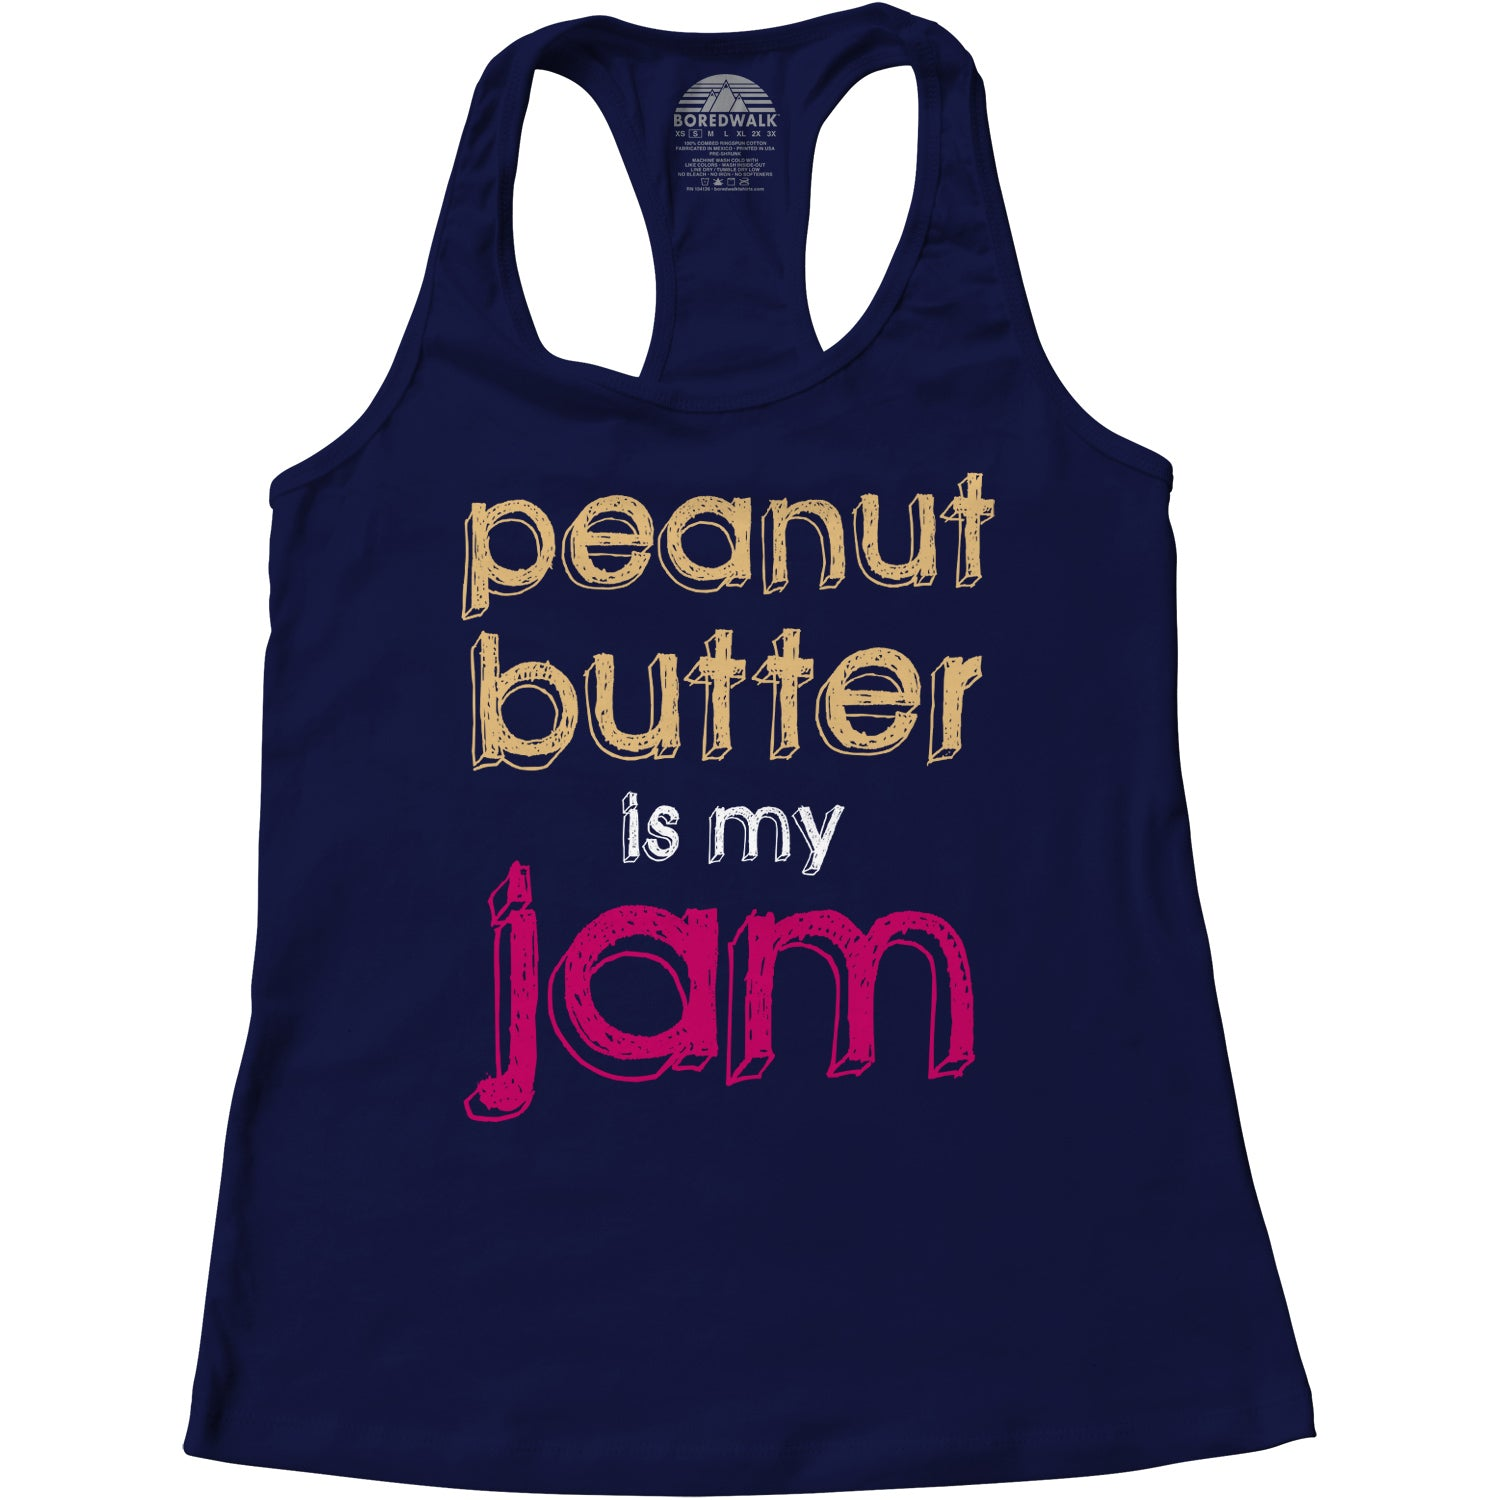 Women's Peanut Butter is My Jam Racerback Tank Top